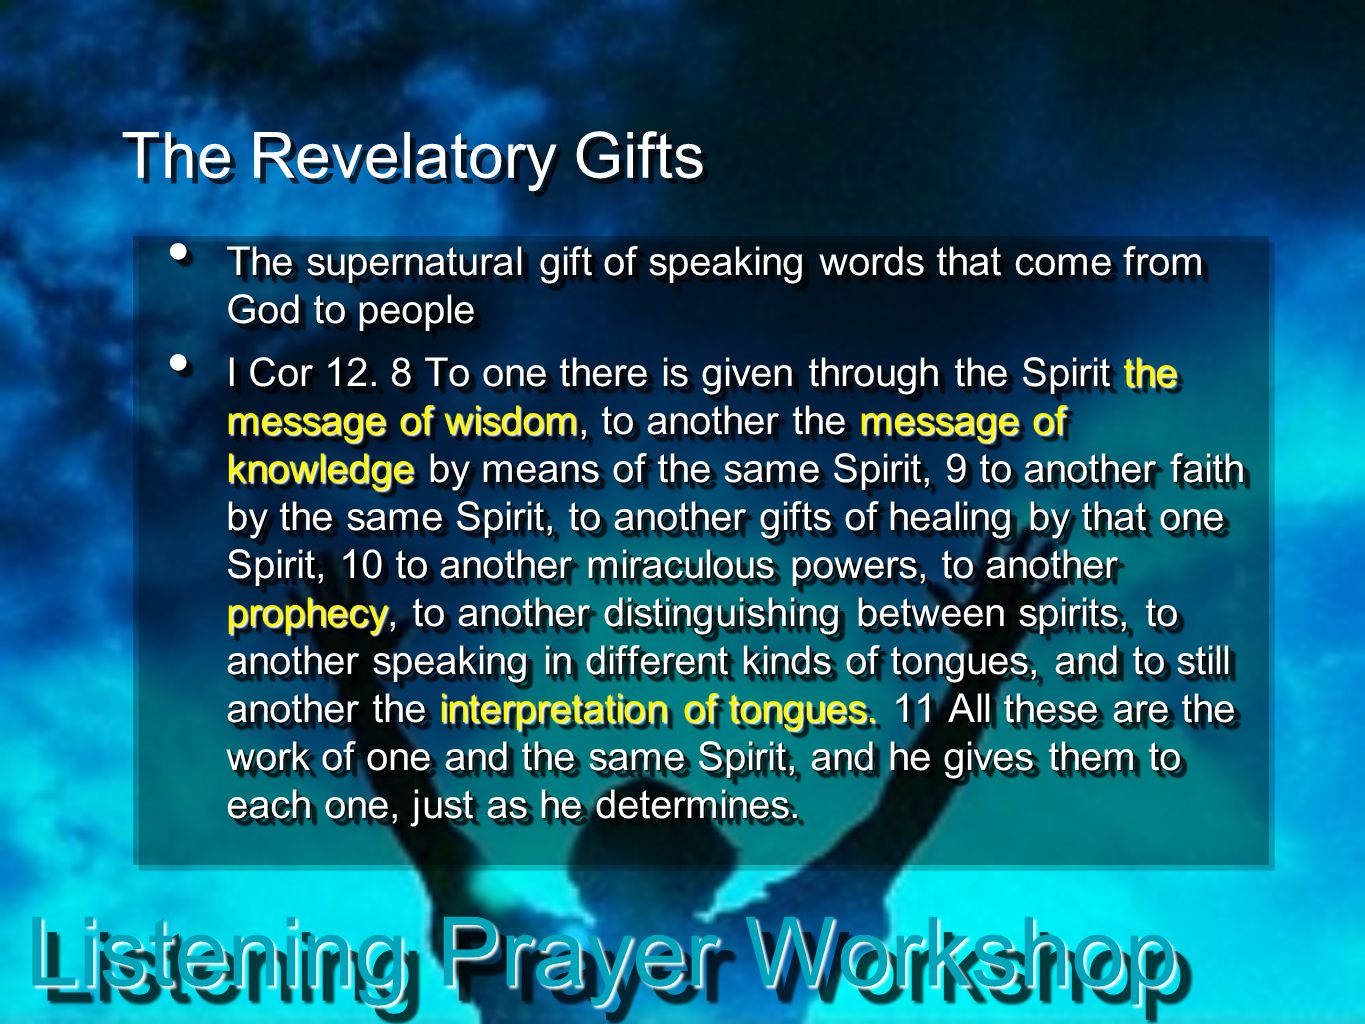 Listening Prayer Workshop Eagerly desire prophecy and use it in love (1 Cor 12-14) But eagerly desire the greater gifts (I Cor 12.31a) A And now I will show you the most excellent way (I Cor 12.31b) B If I speak in tongues...